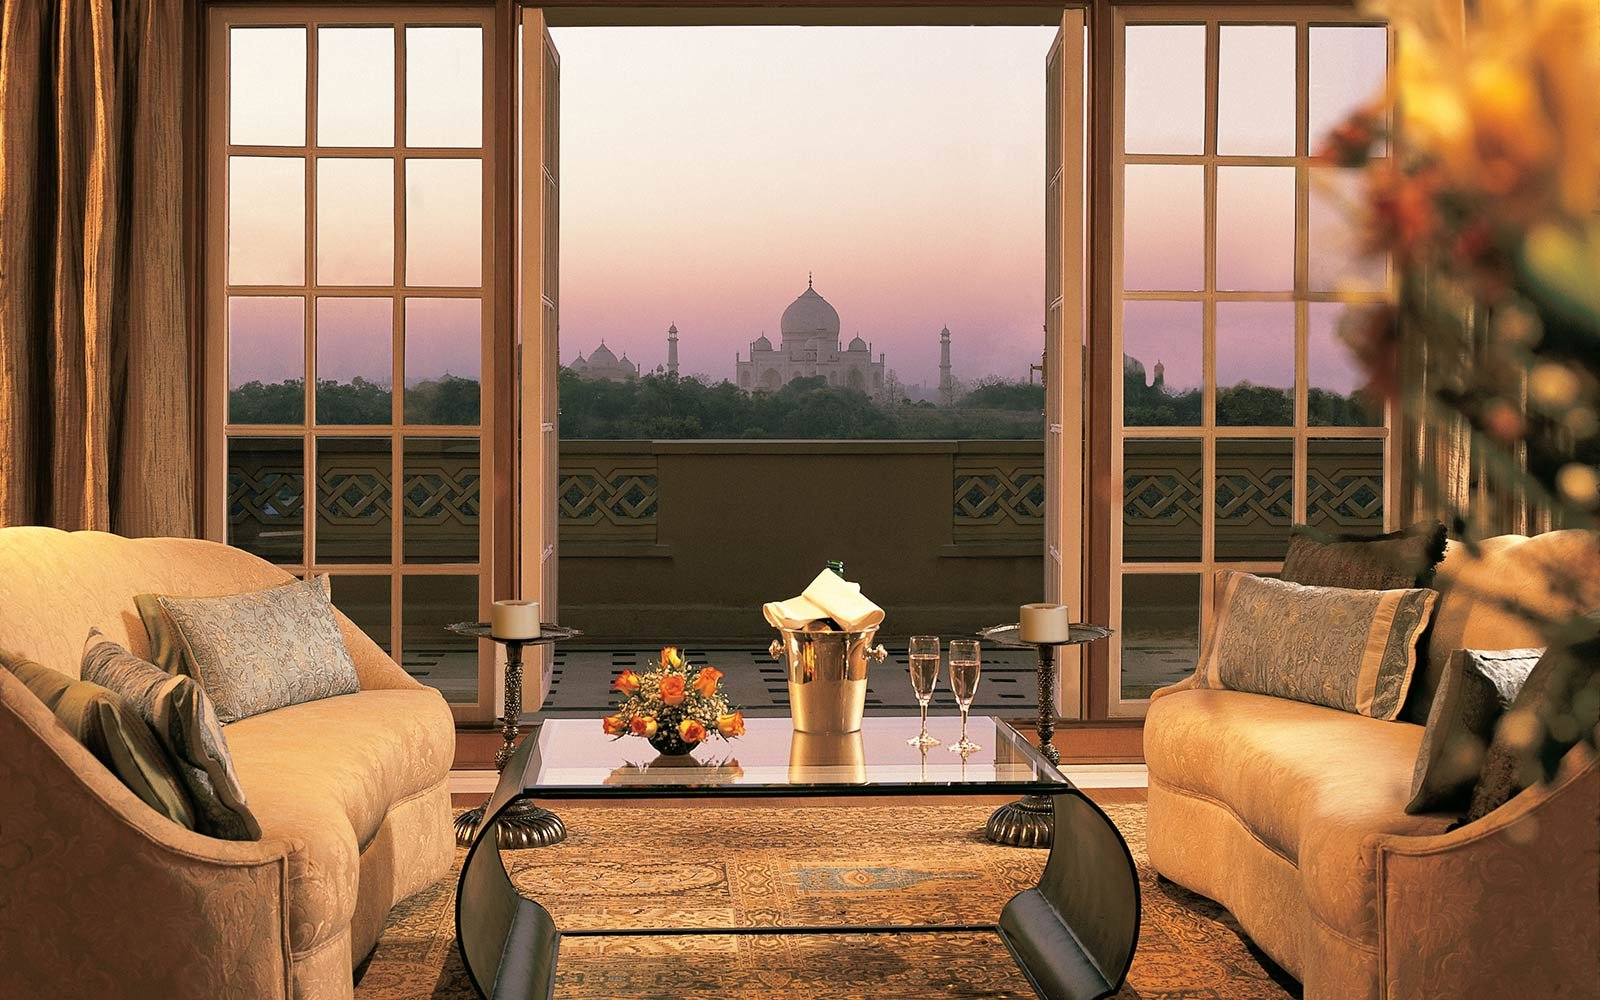 The Oberoi Amarvilas in Agra,  India